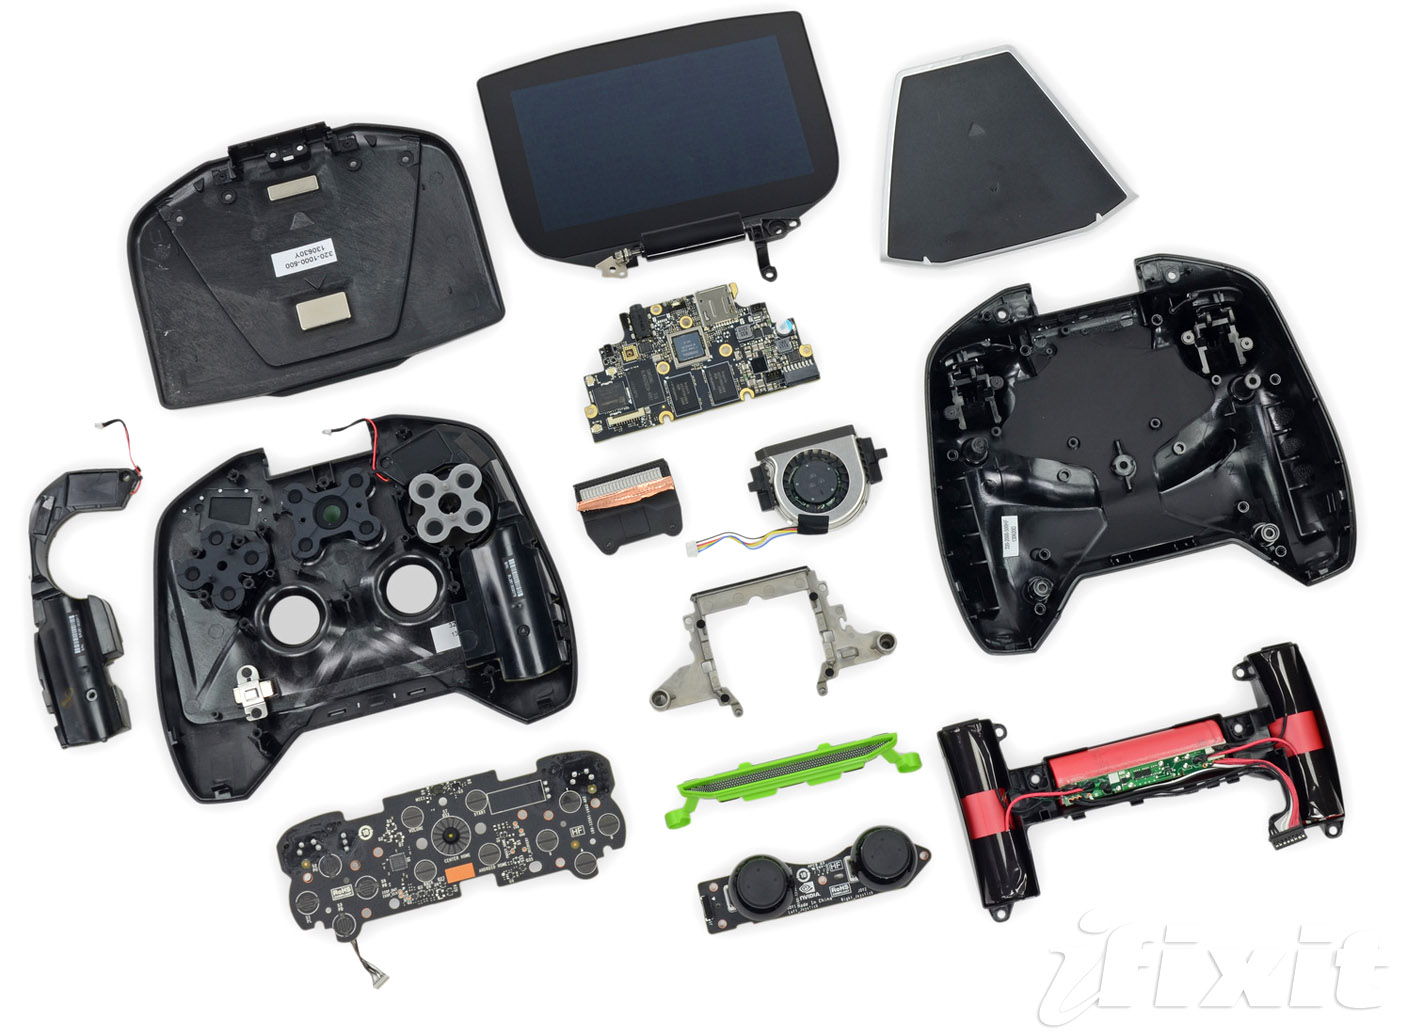 NVIDIA Shield Android handheld gets tear-down treatment as